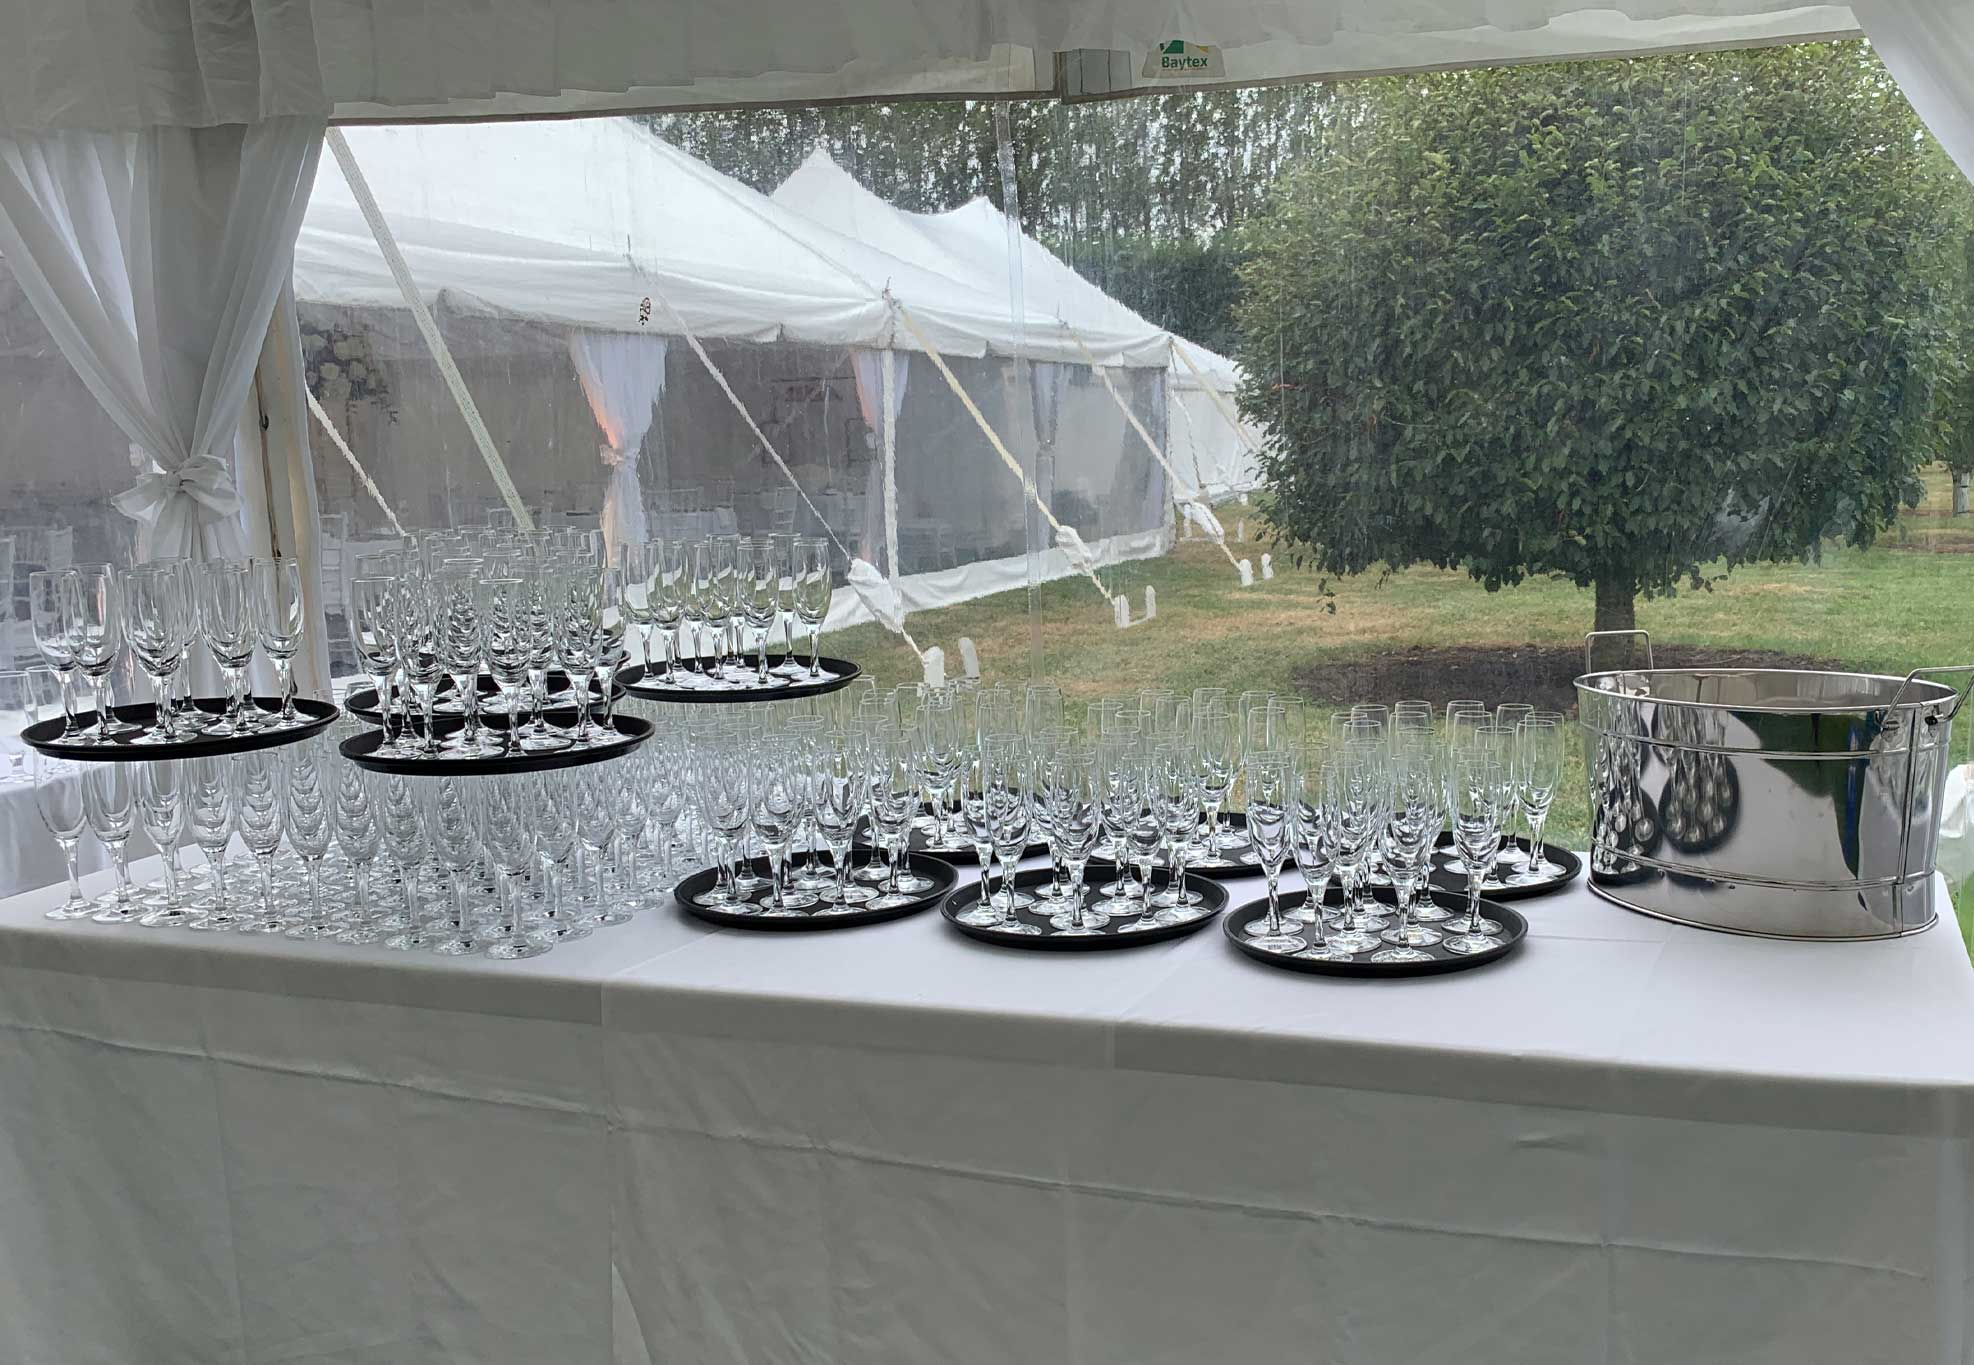 silk-estate-marquee-weddings-and-events-styling-and-hire-glassware-champagne-glasses-2